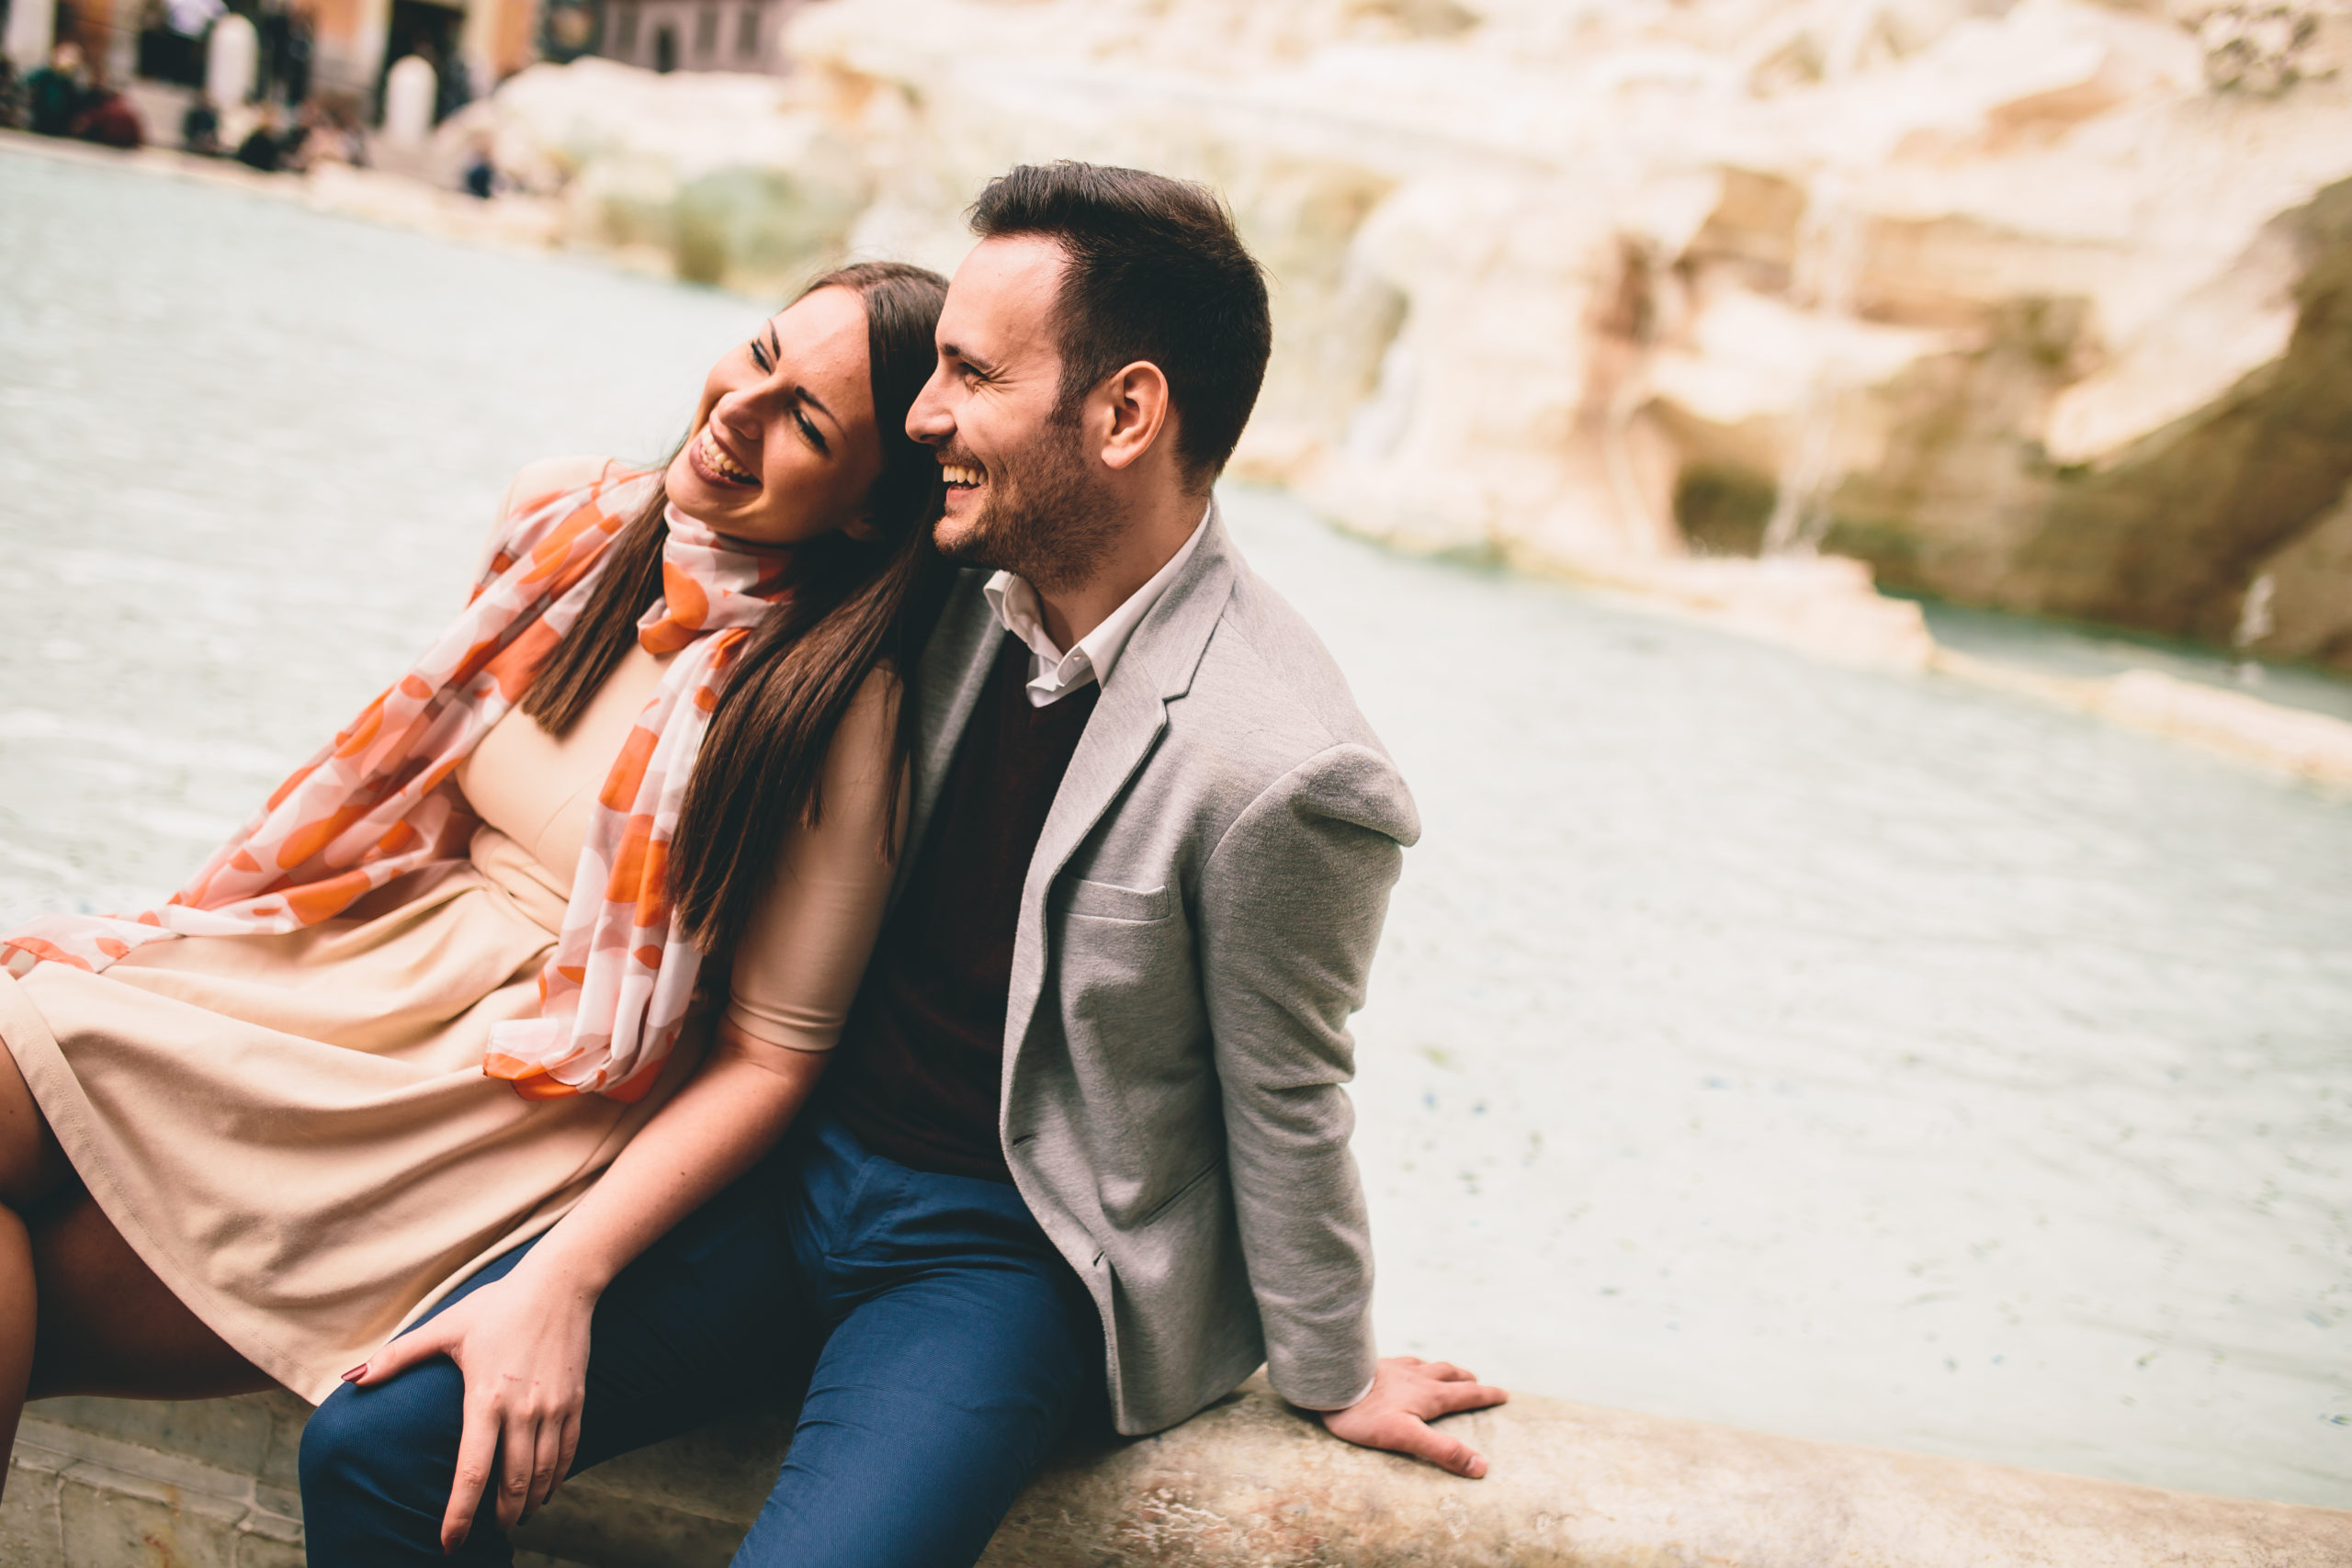 A happy woman and man sitting by a river, enjoying each other's company.